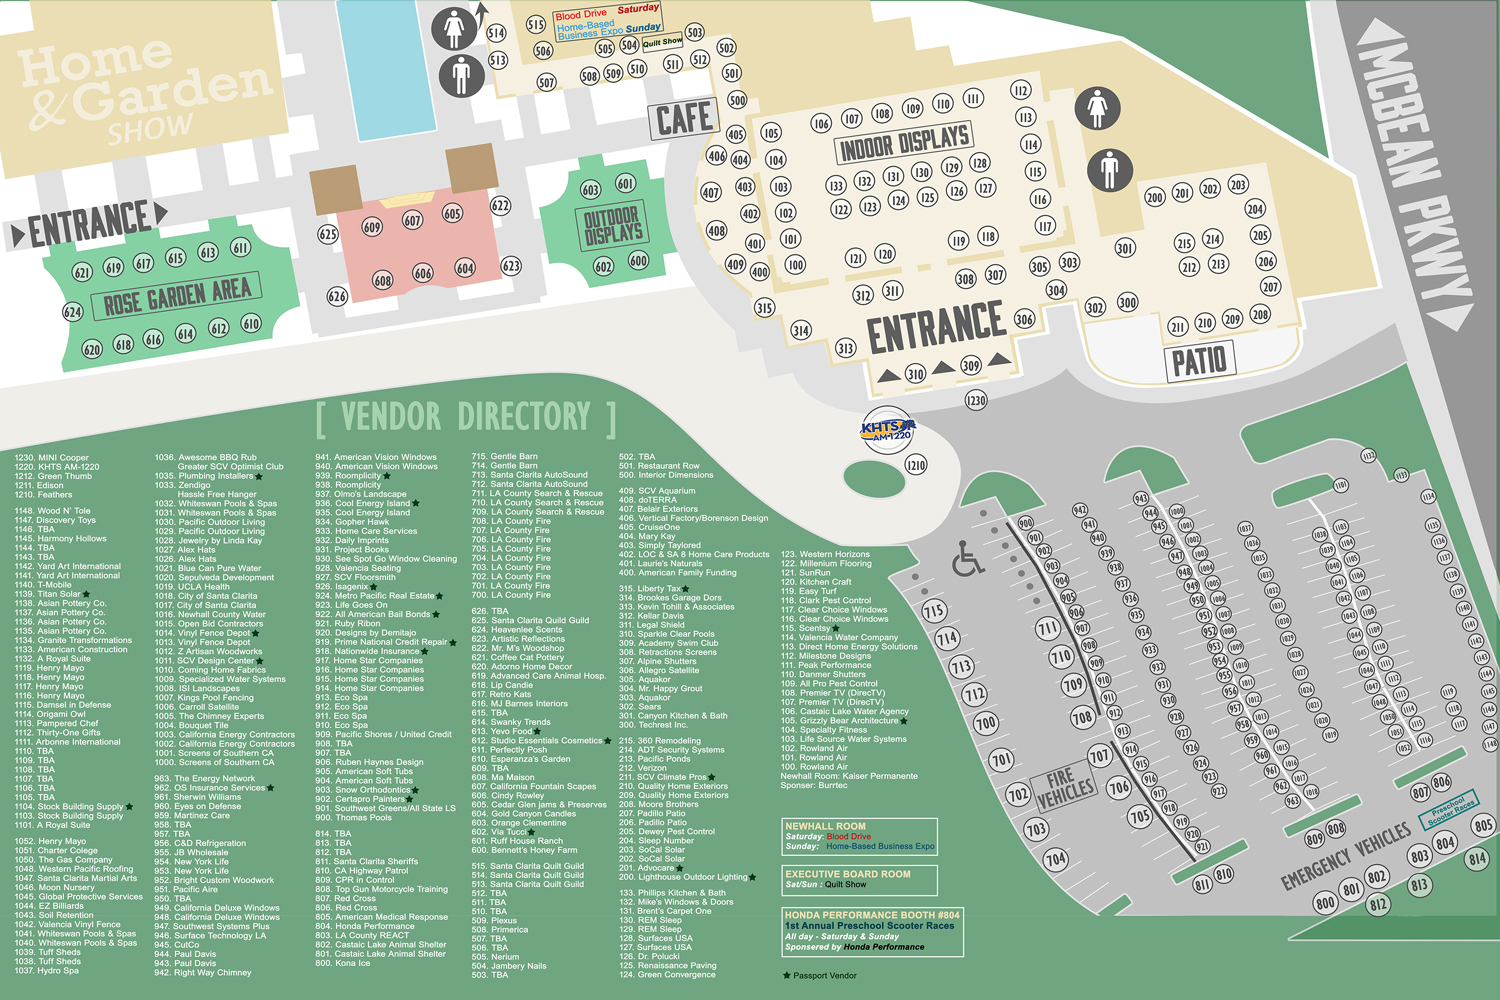 2015 santa clarita home and garden show vendor directory map 2019 khts santa clarita home and for Cal expo home and garden show 2017